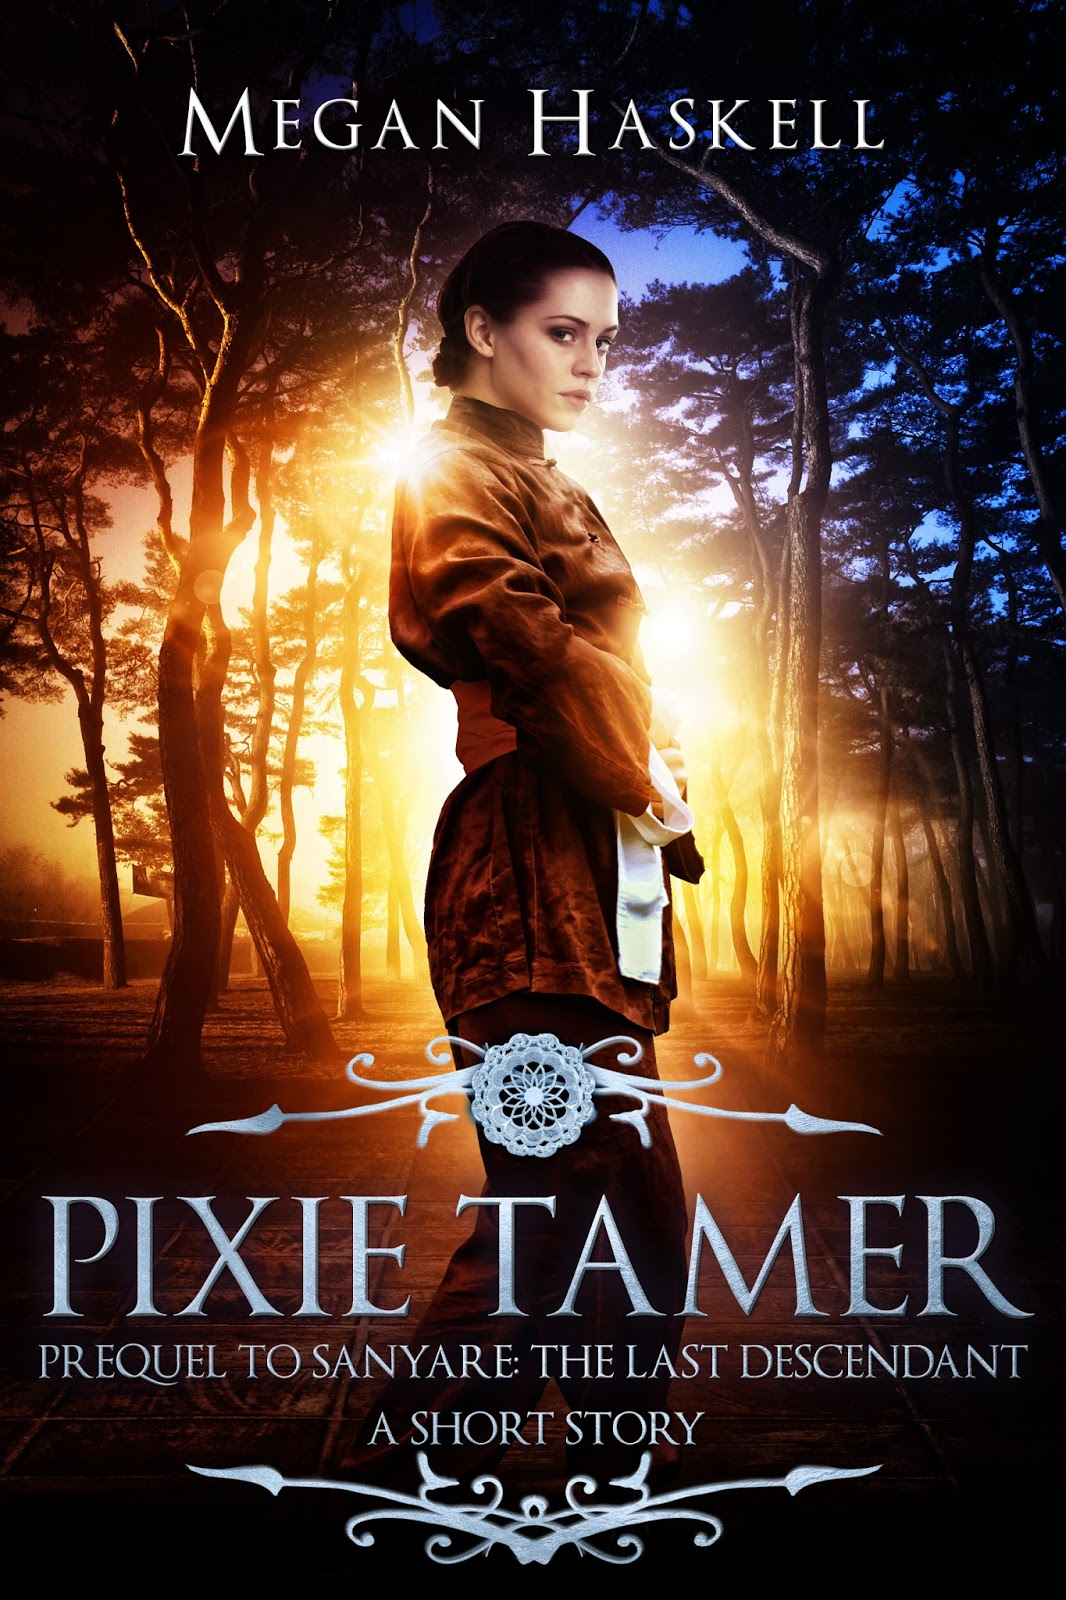 Get Your FREE copy of Pixie Tamer!